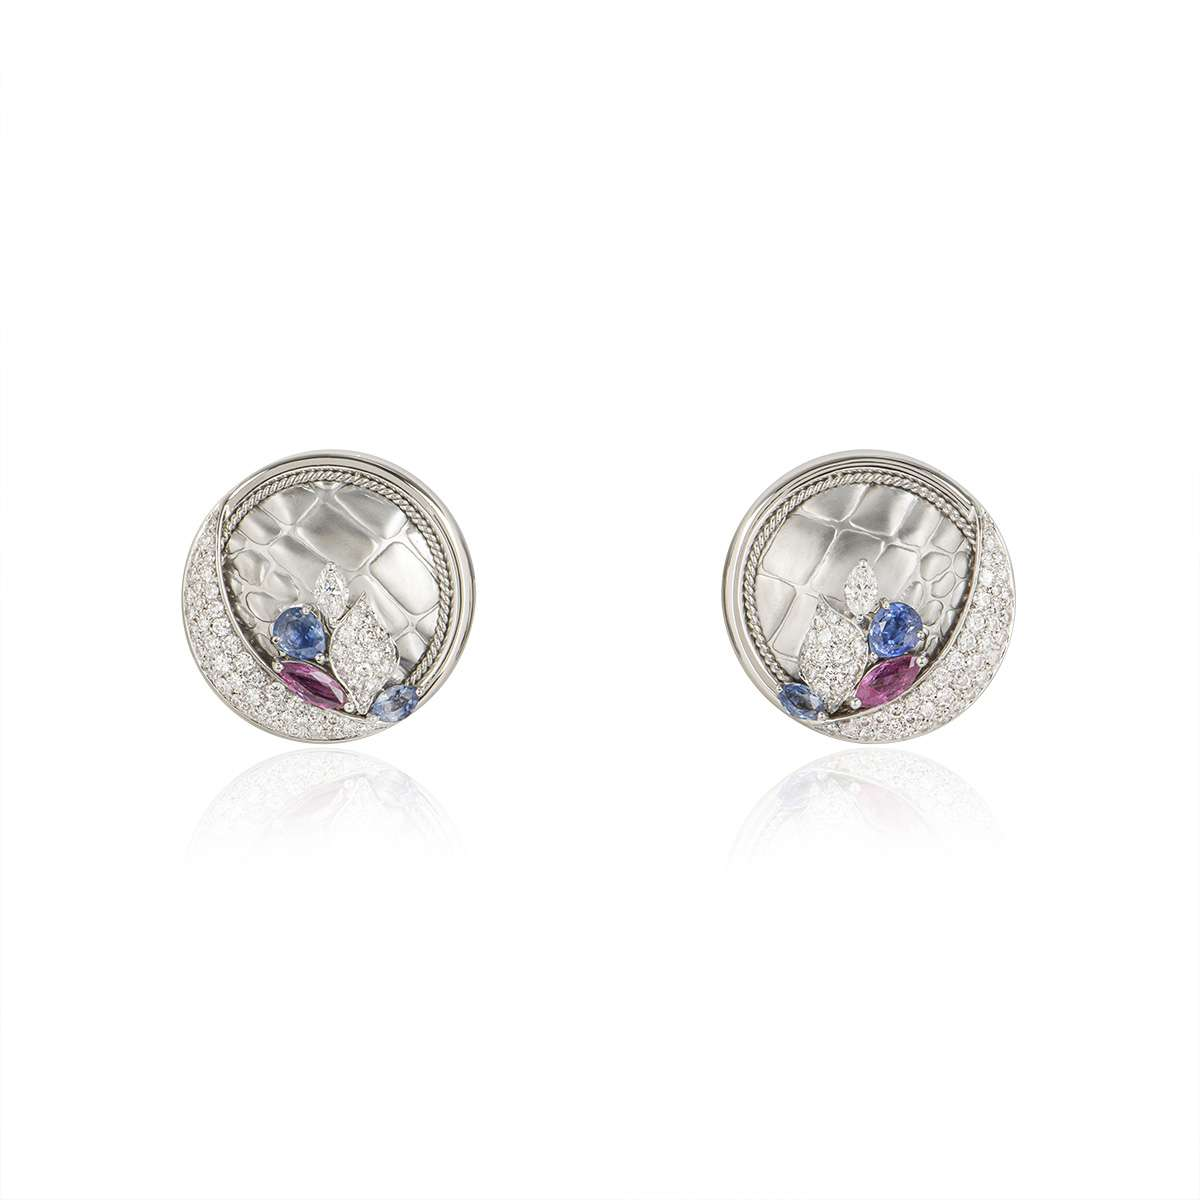 White Gold Diamond, Ruby and Sapphire Earrings